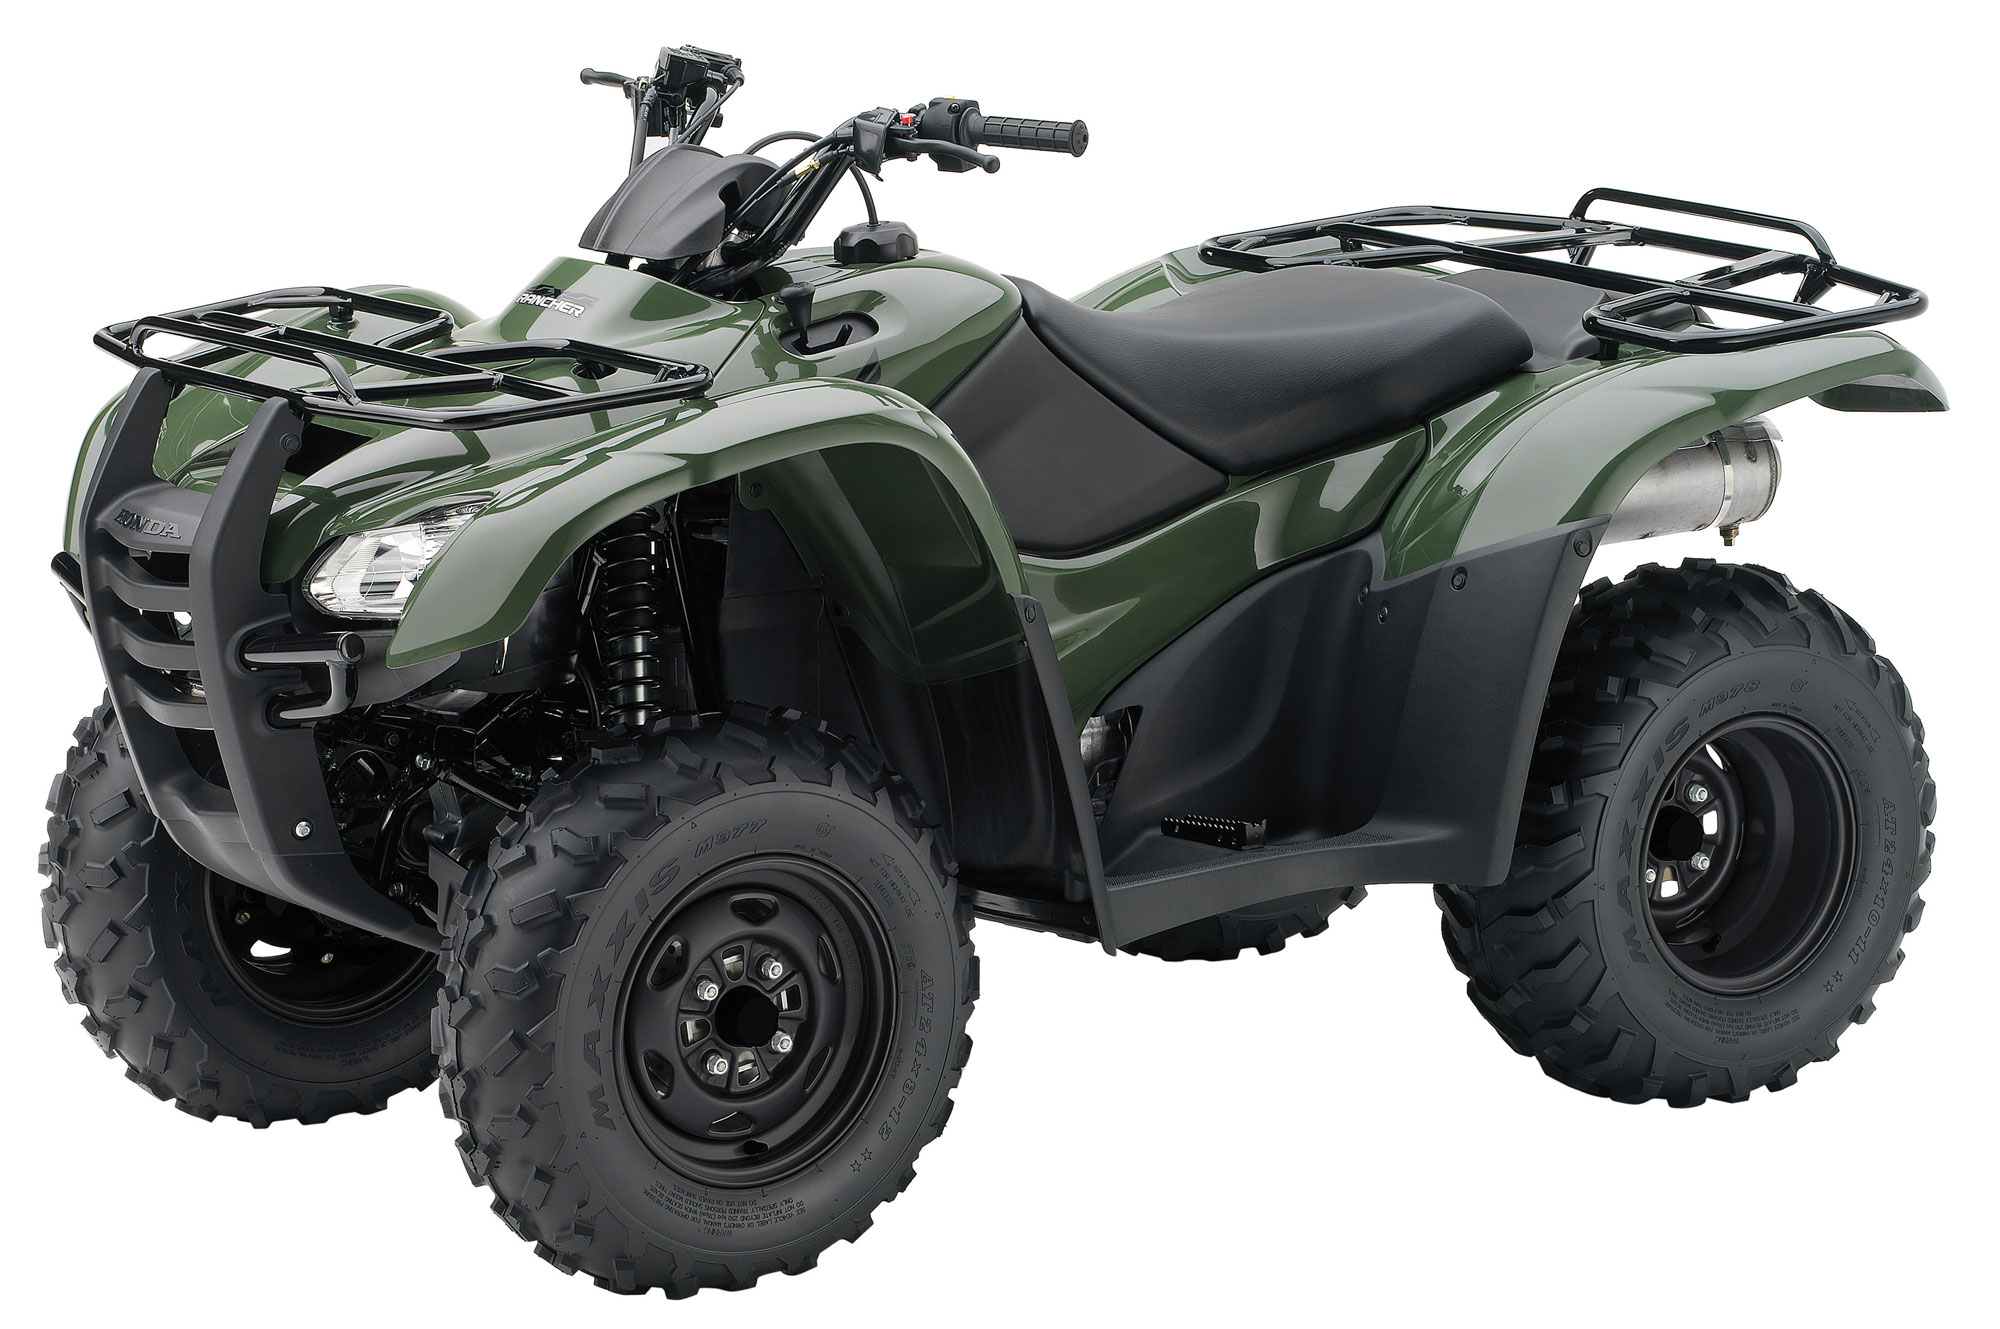 2013 honda fourtrax rancher 4x4 trx420fm review. Black Bedroom Furniture Sets. Home Design Ideas